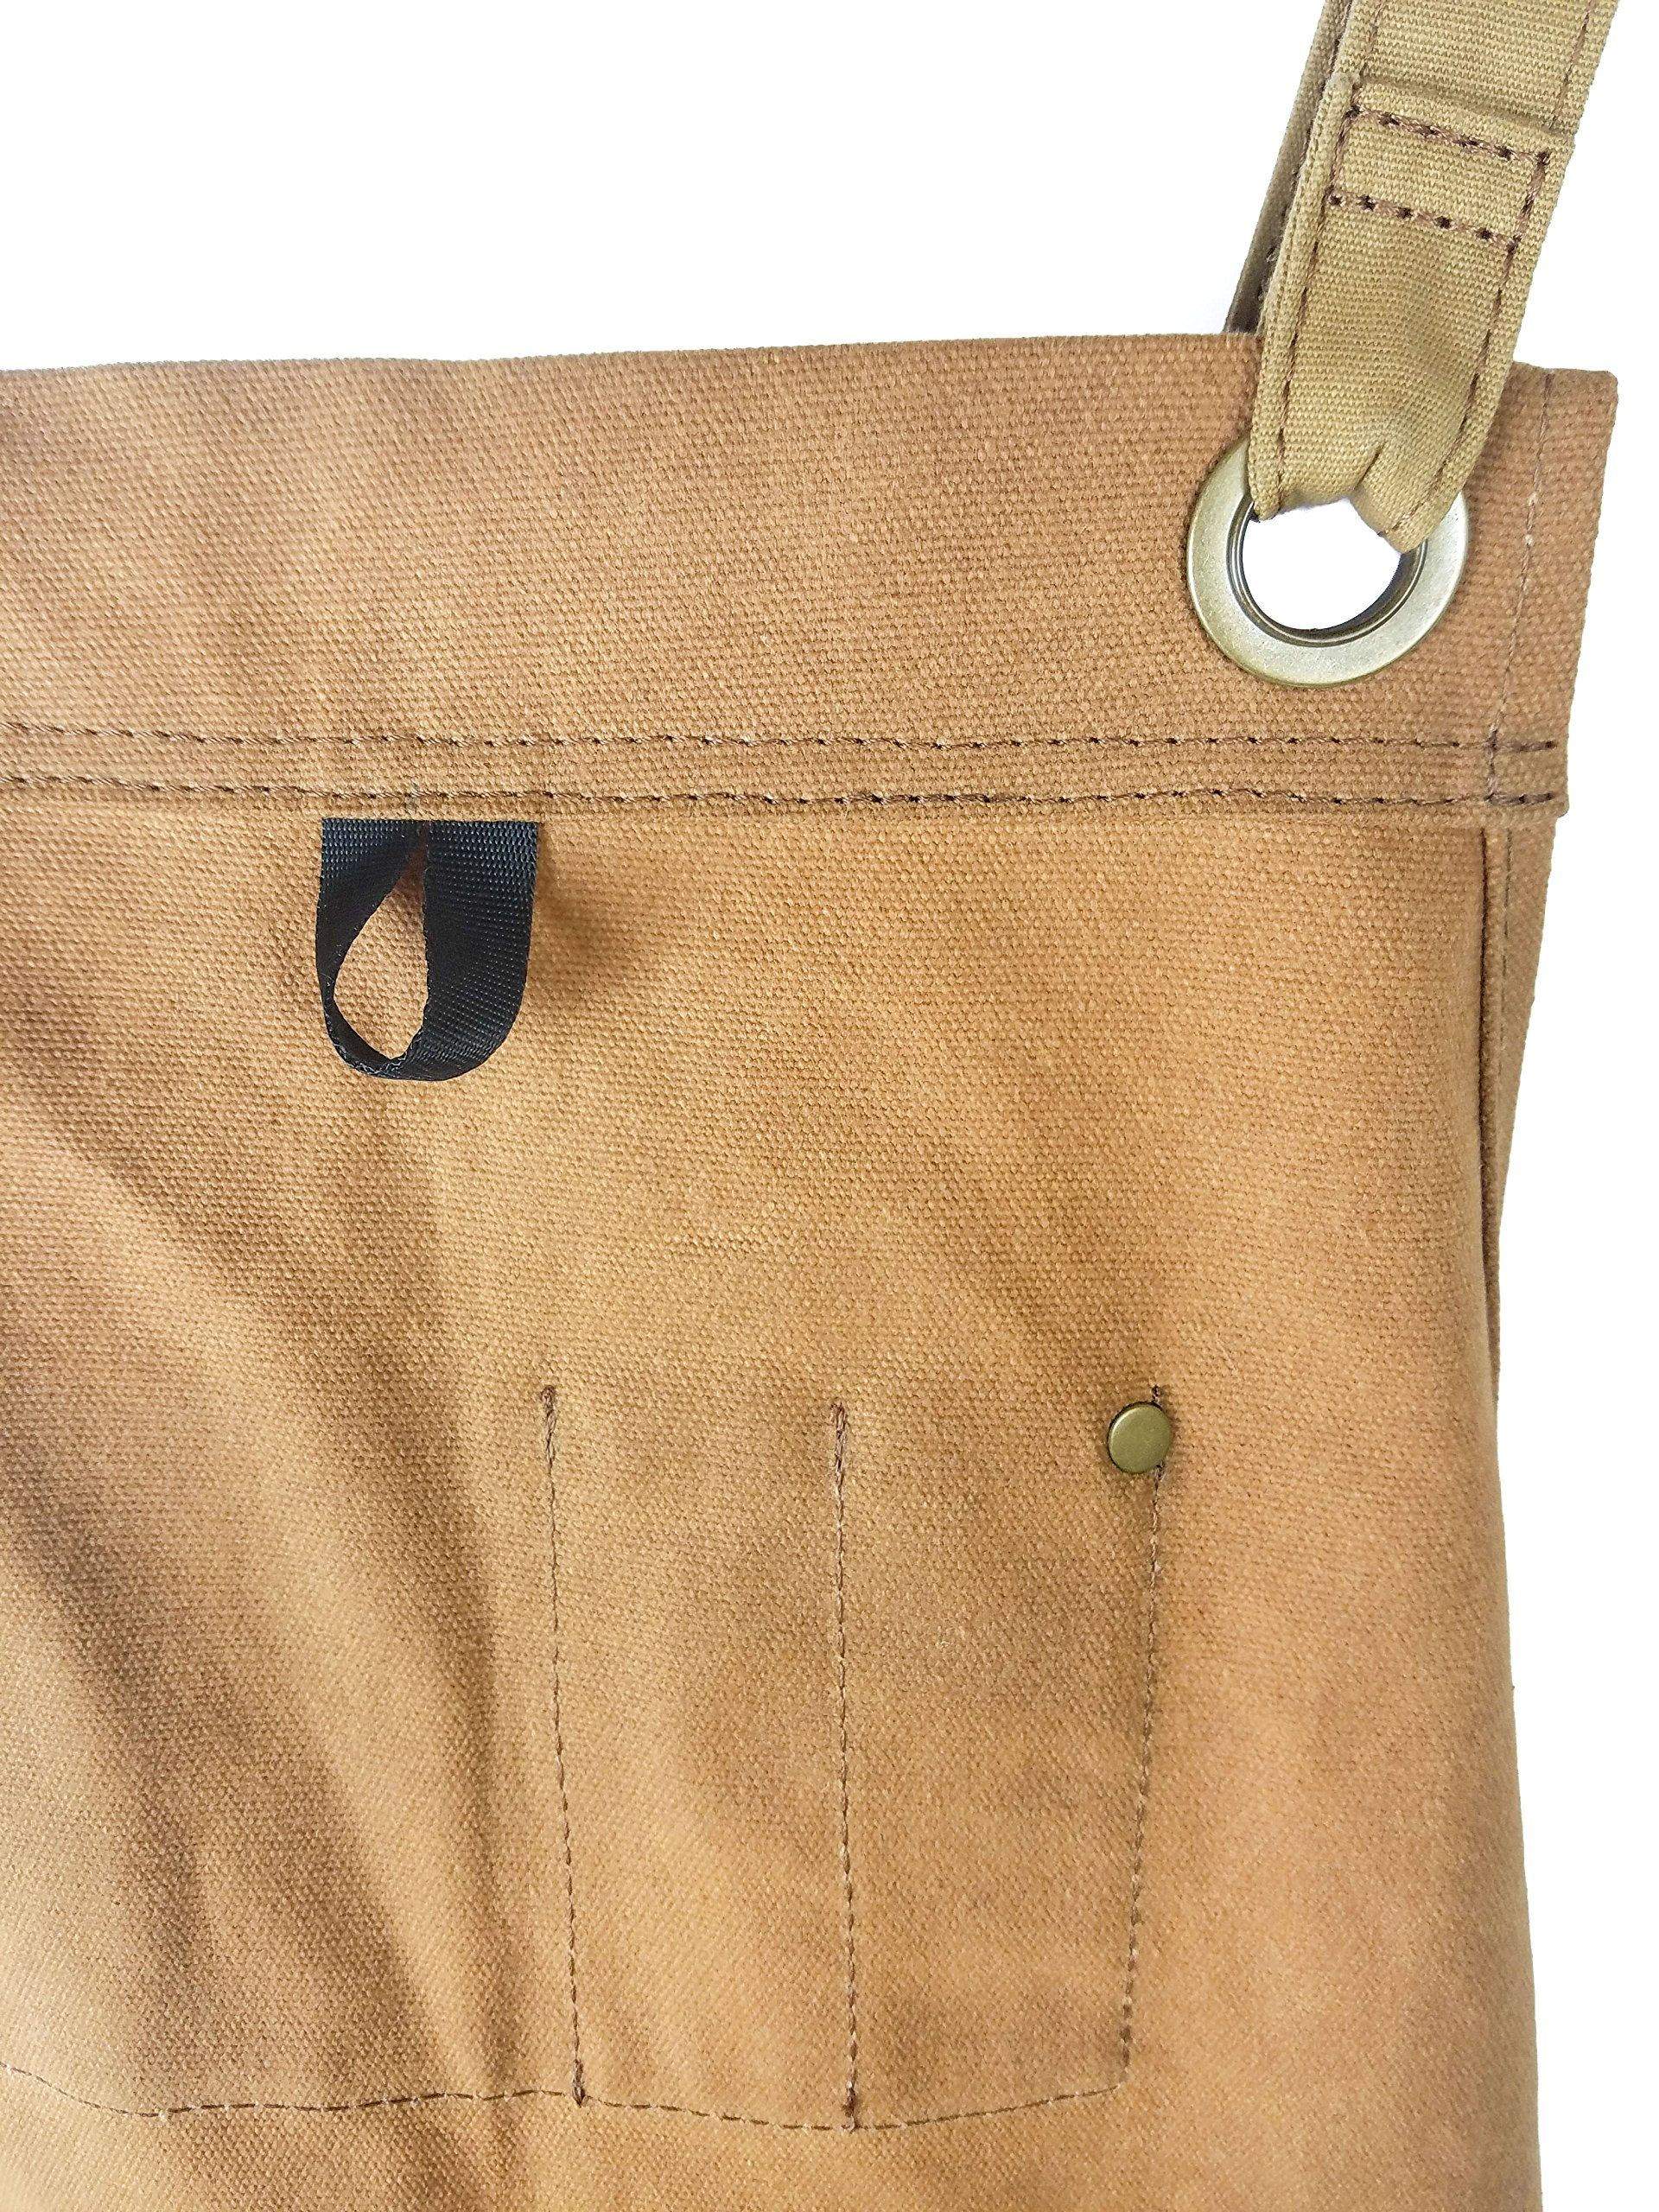 Waxed Canvas Apron Woodworking Edition Brown - Padded Hudson Durable Goods